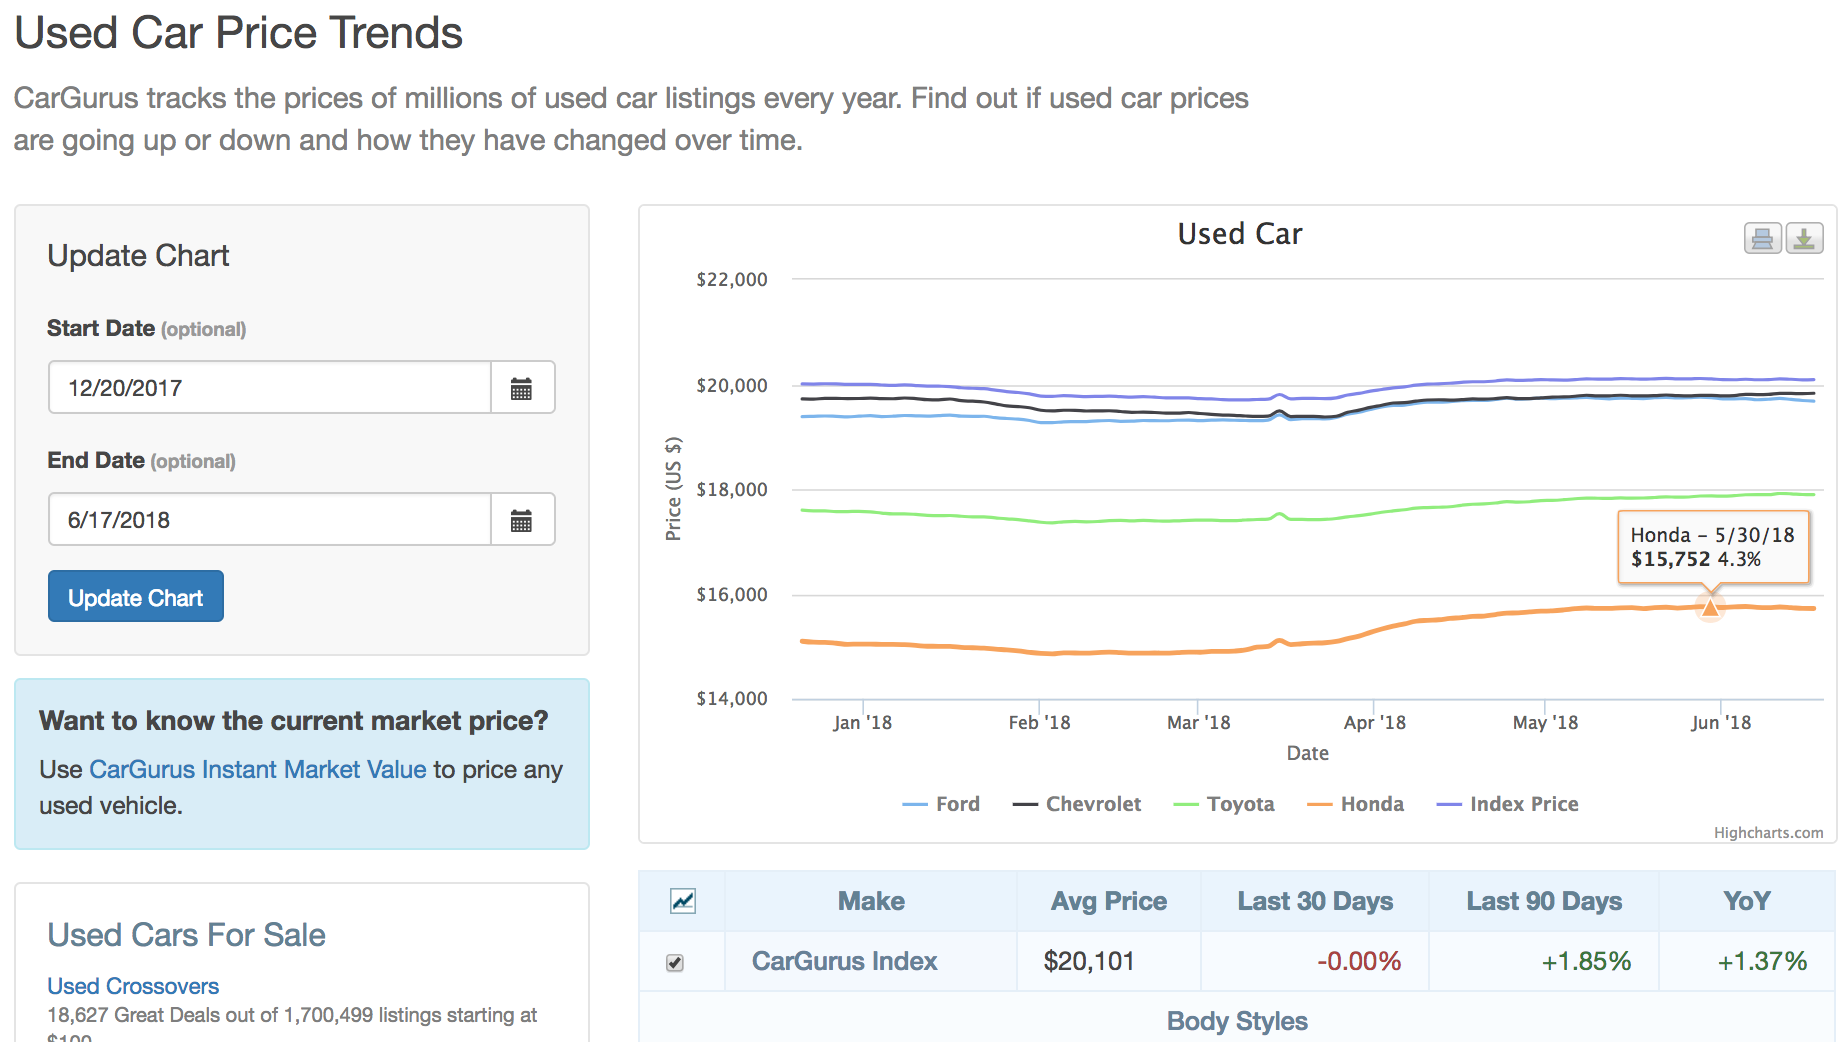 See how used car prices change over time with CarGurus' Price Trends.